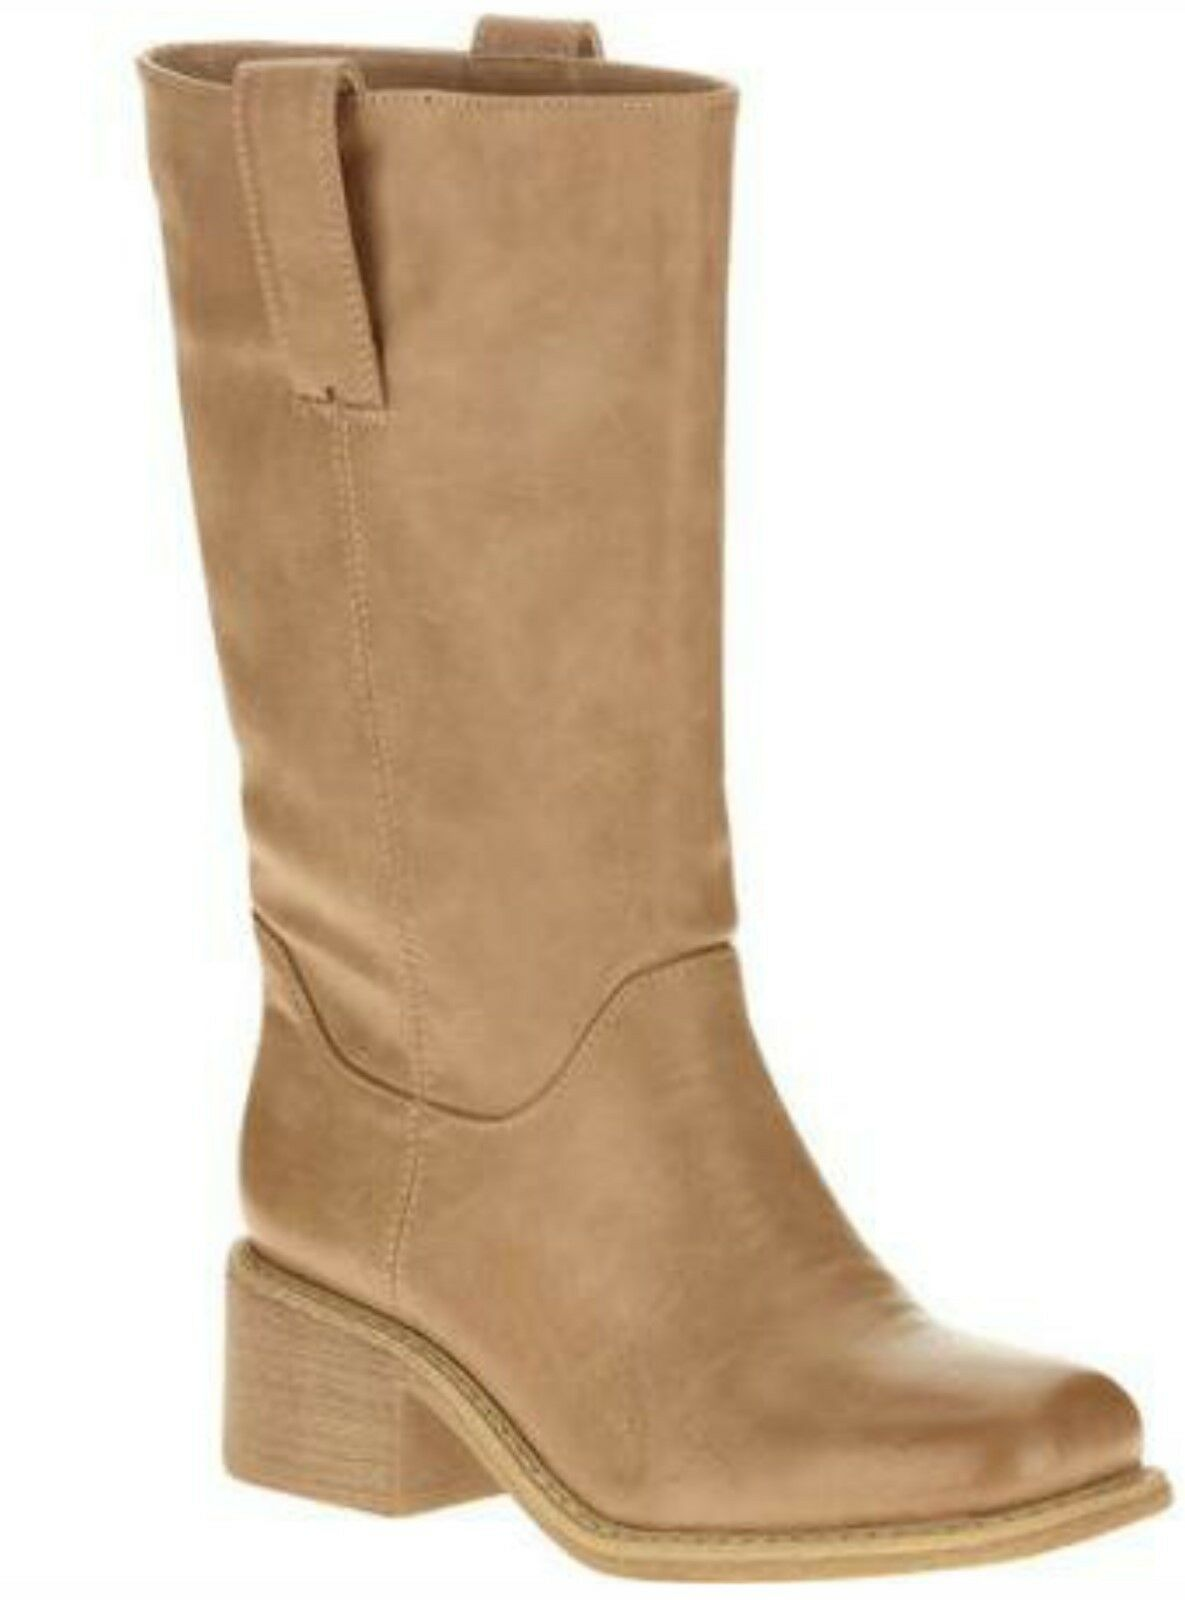 Womens Shoe Size 8 - 9 Natural Tan Boots Tall Mid Calf Western Boot Heel Shoes